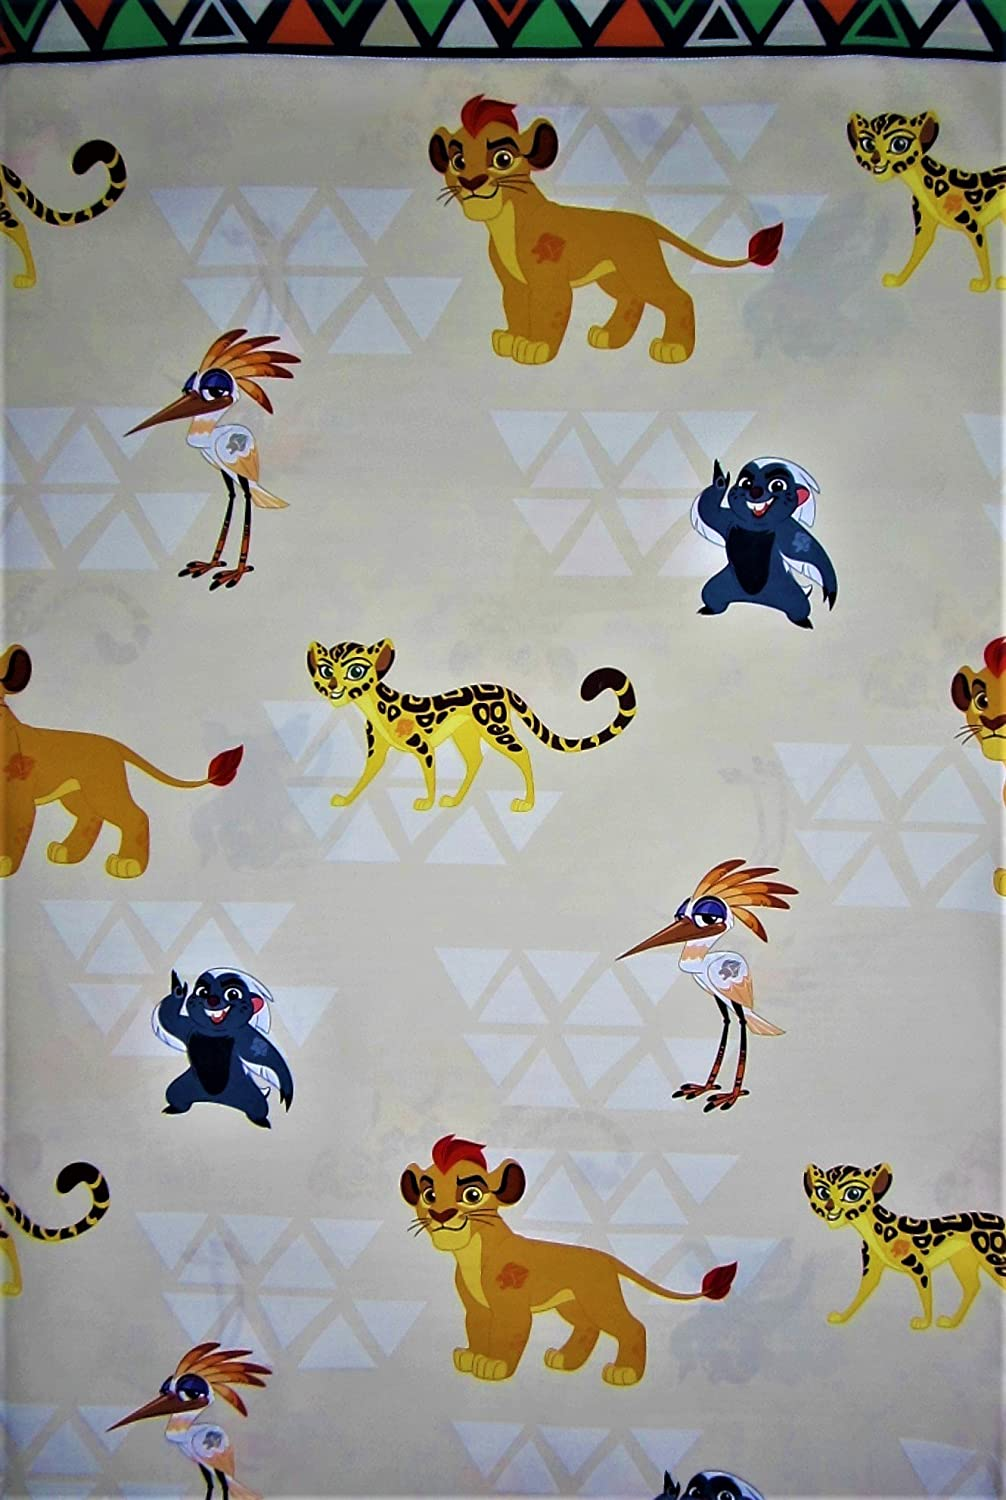 Lion King Kion The Prince Of Pride Rock (FLAT SHEET ONLY) Size TWIN Boys Girls Kids Bedding Jay Franco & Sons Inc.